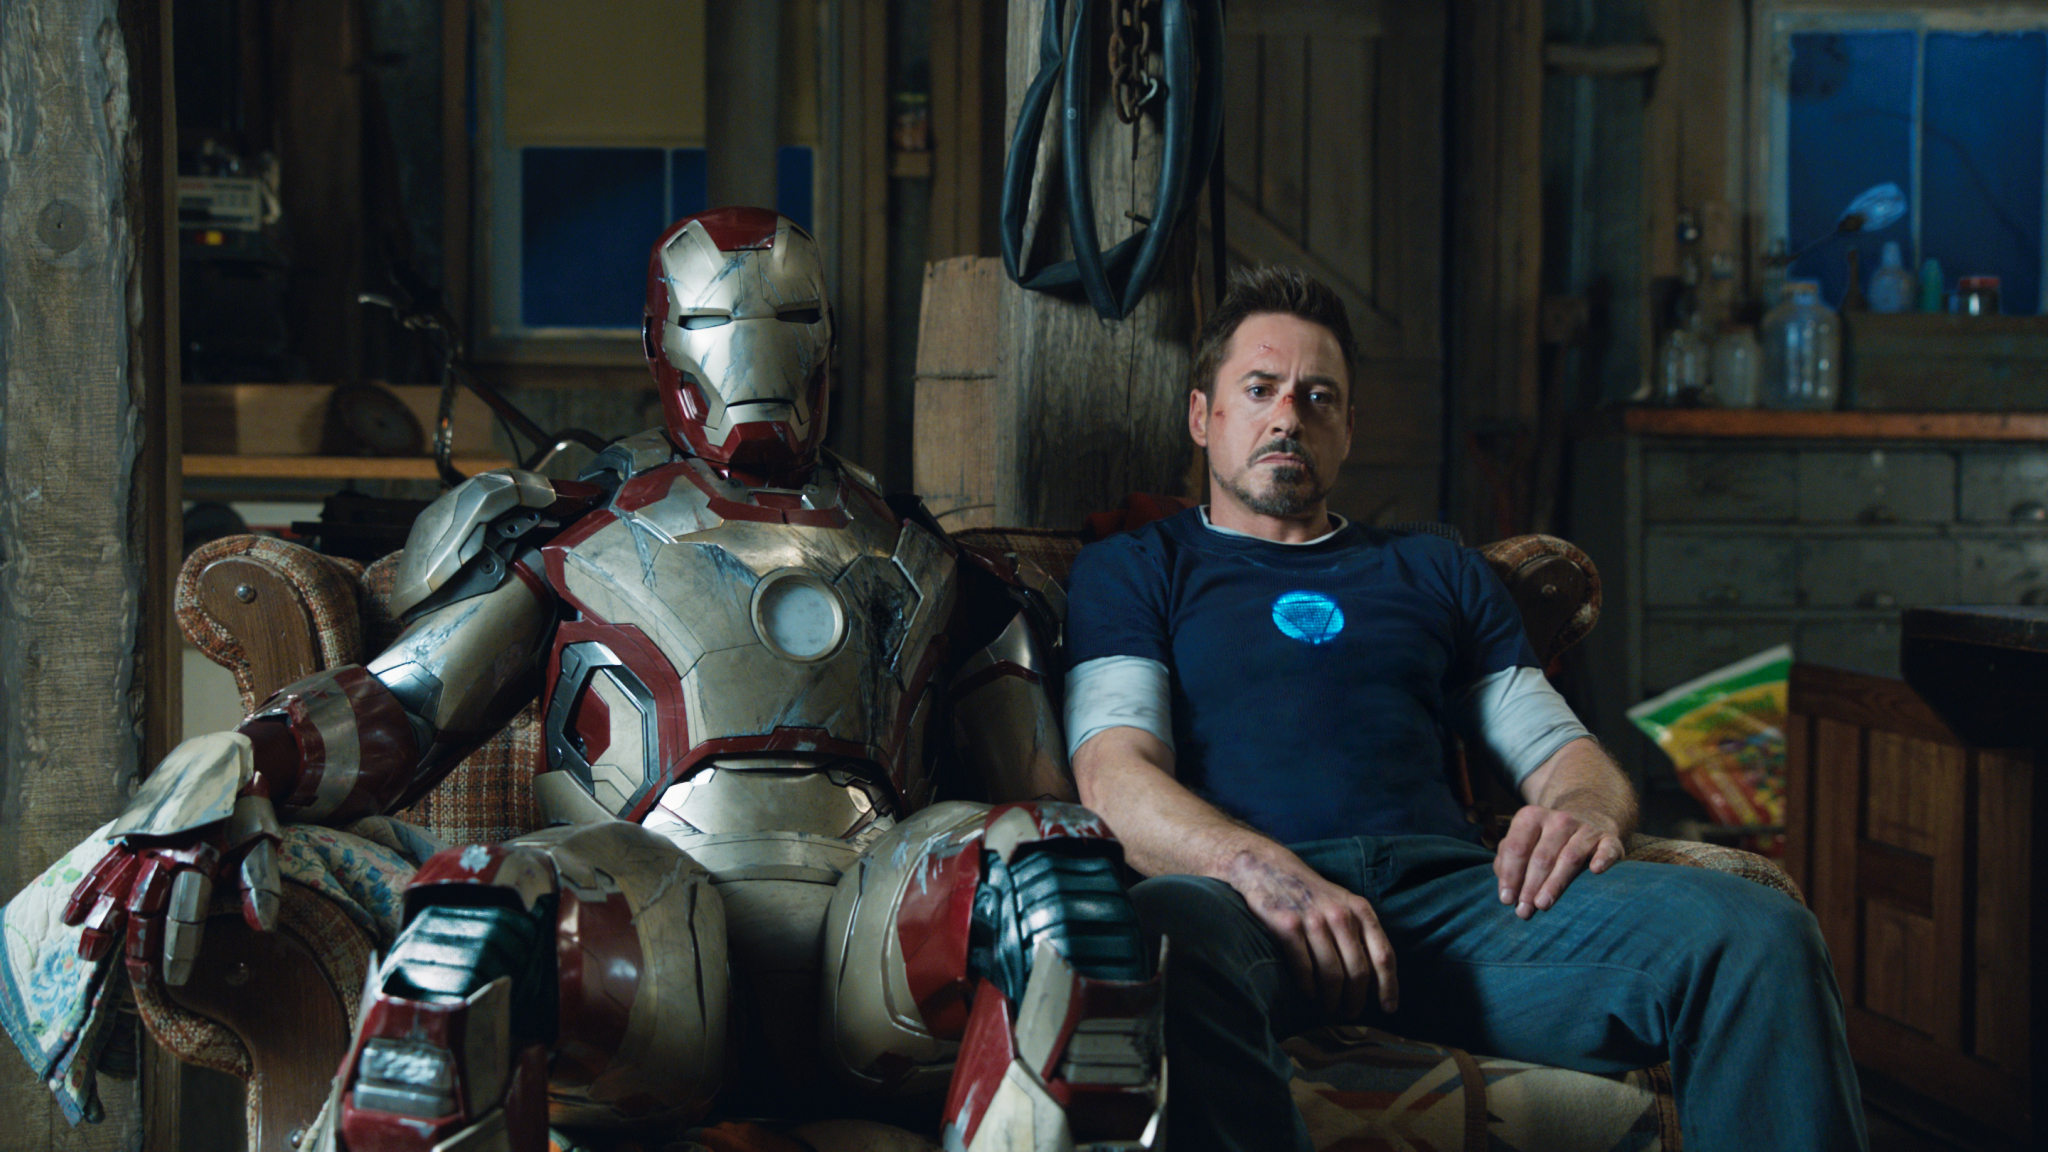 http://collider.com/wp-content/uploads/iron-man-3-tony-stark-robert-downey-jr.jpg